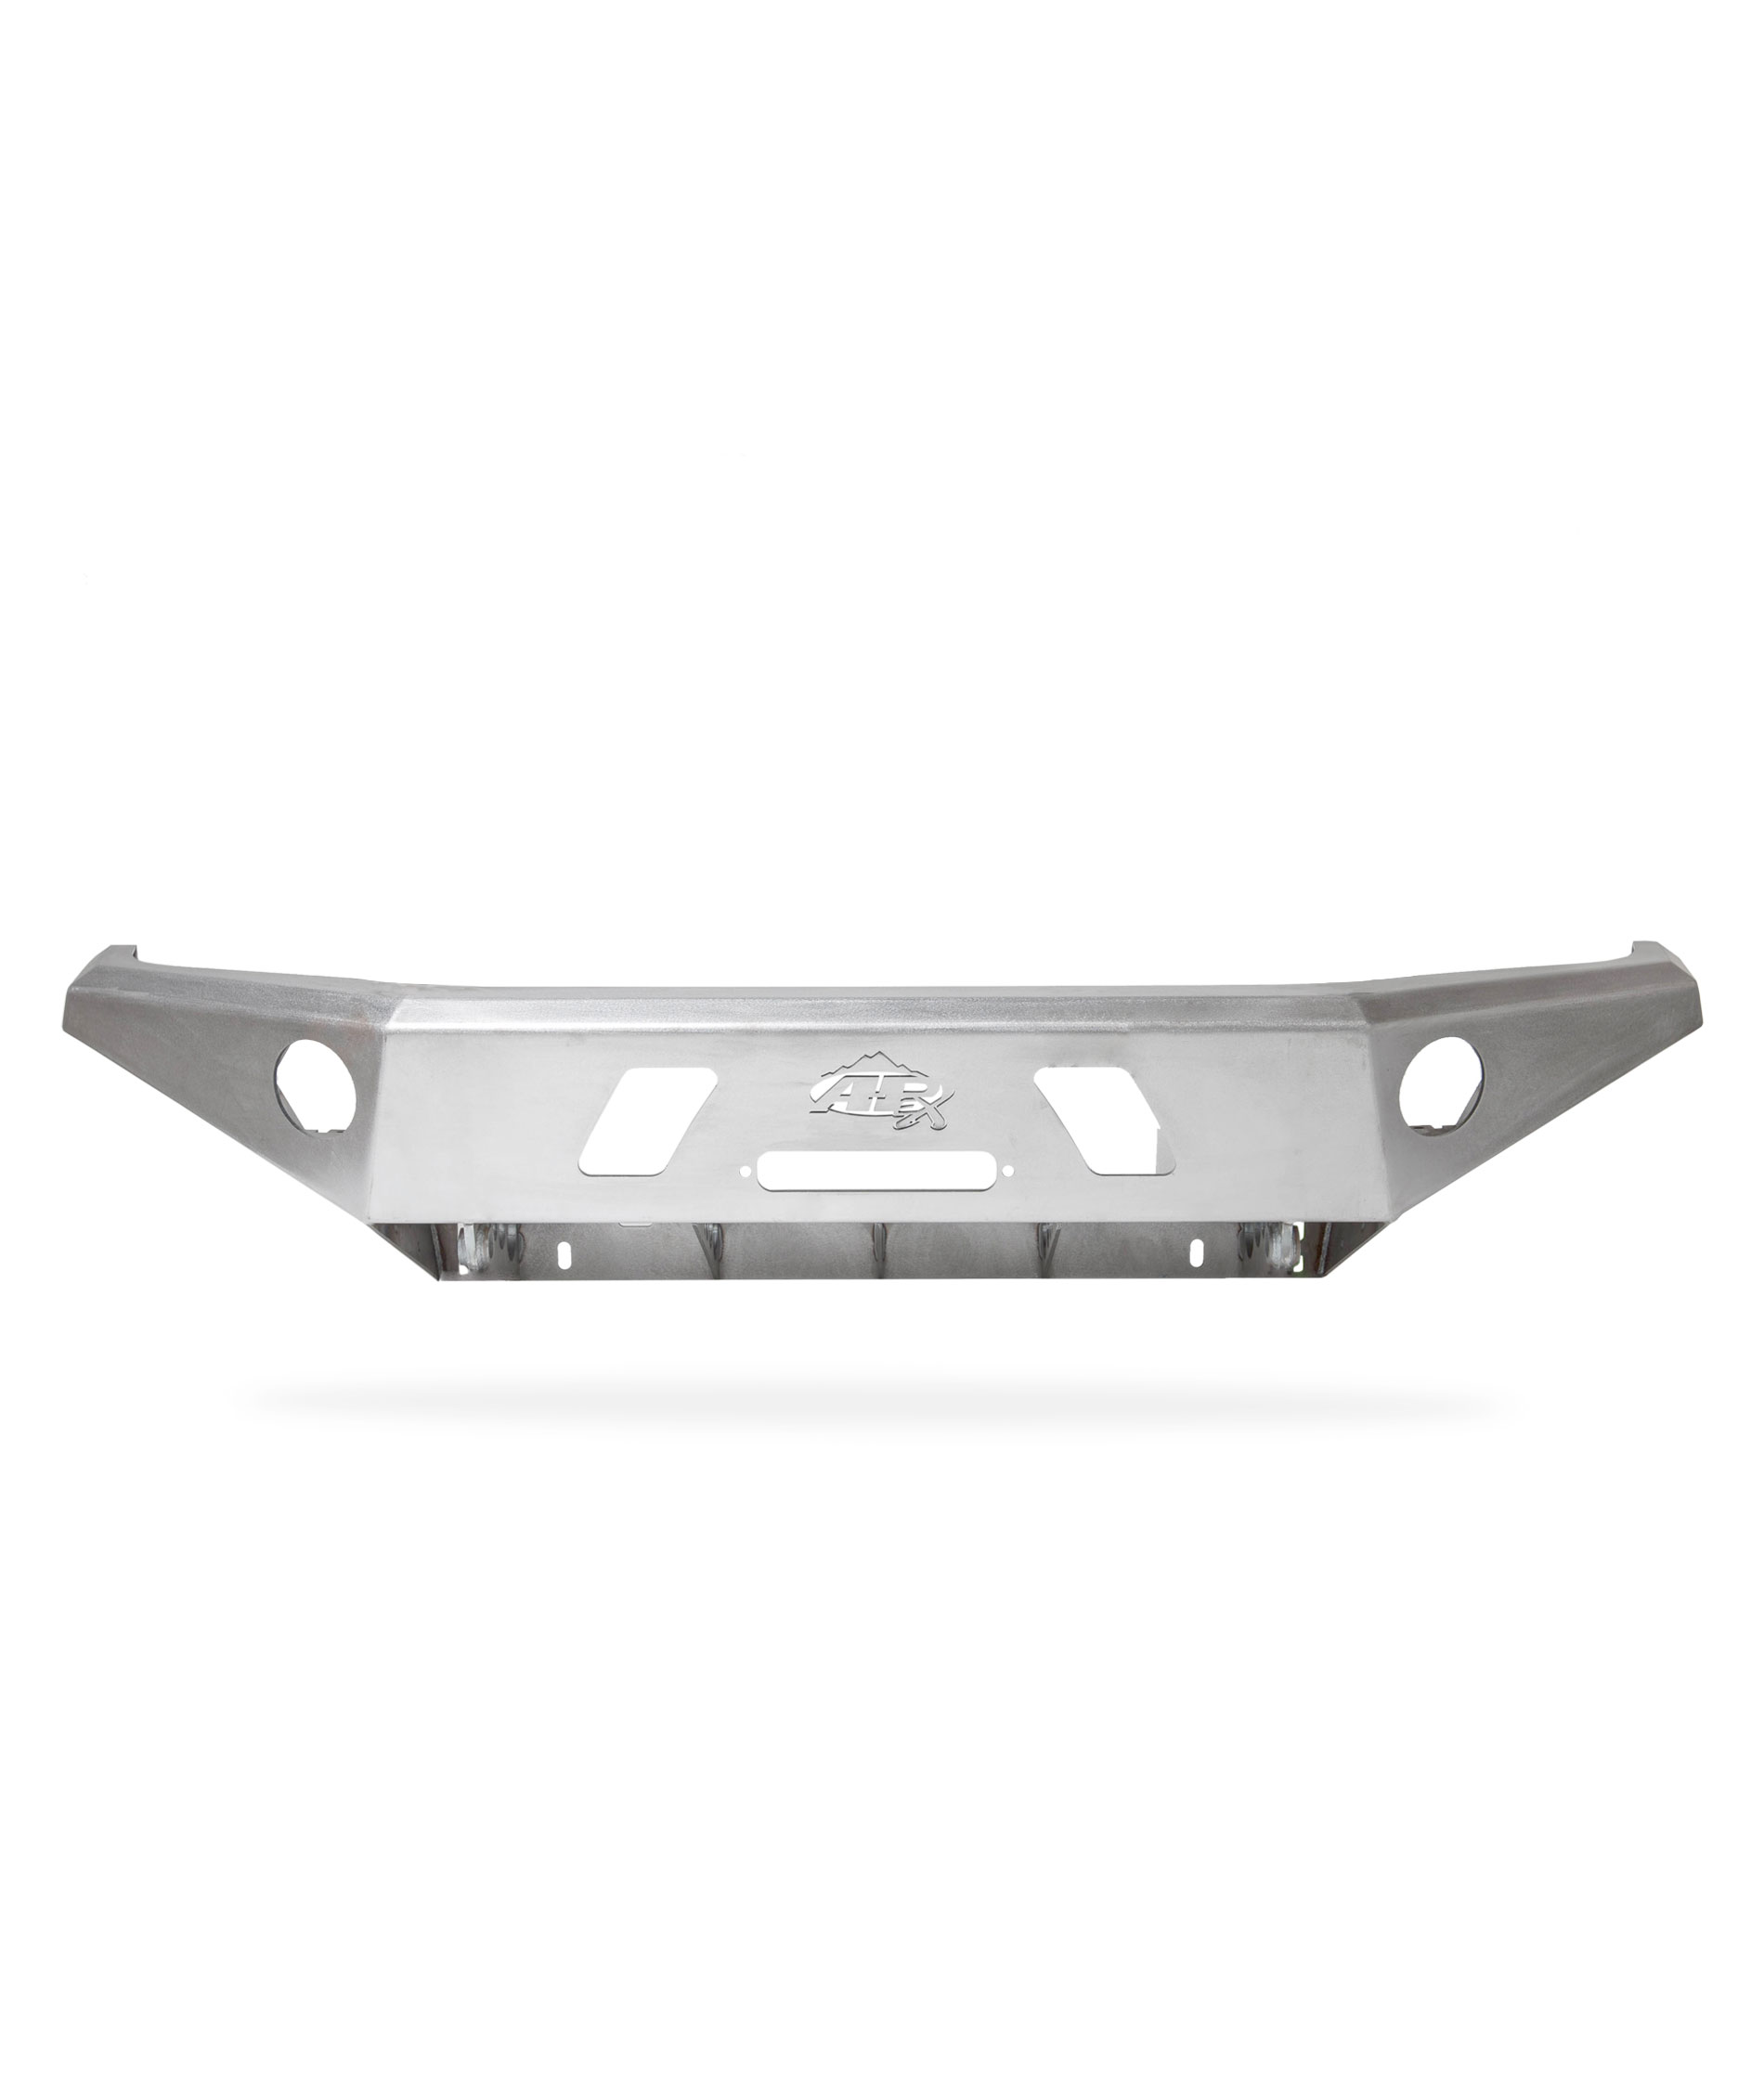 All-Pro Off-Road 05-15 Tacoma APEX Front Bumper